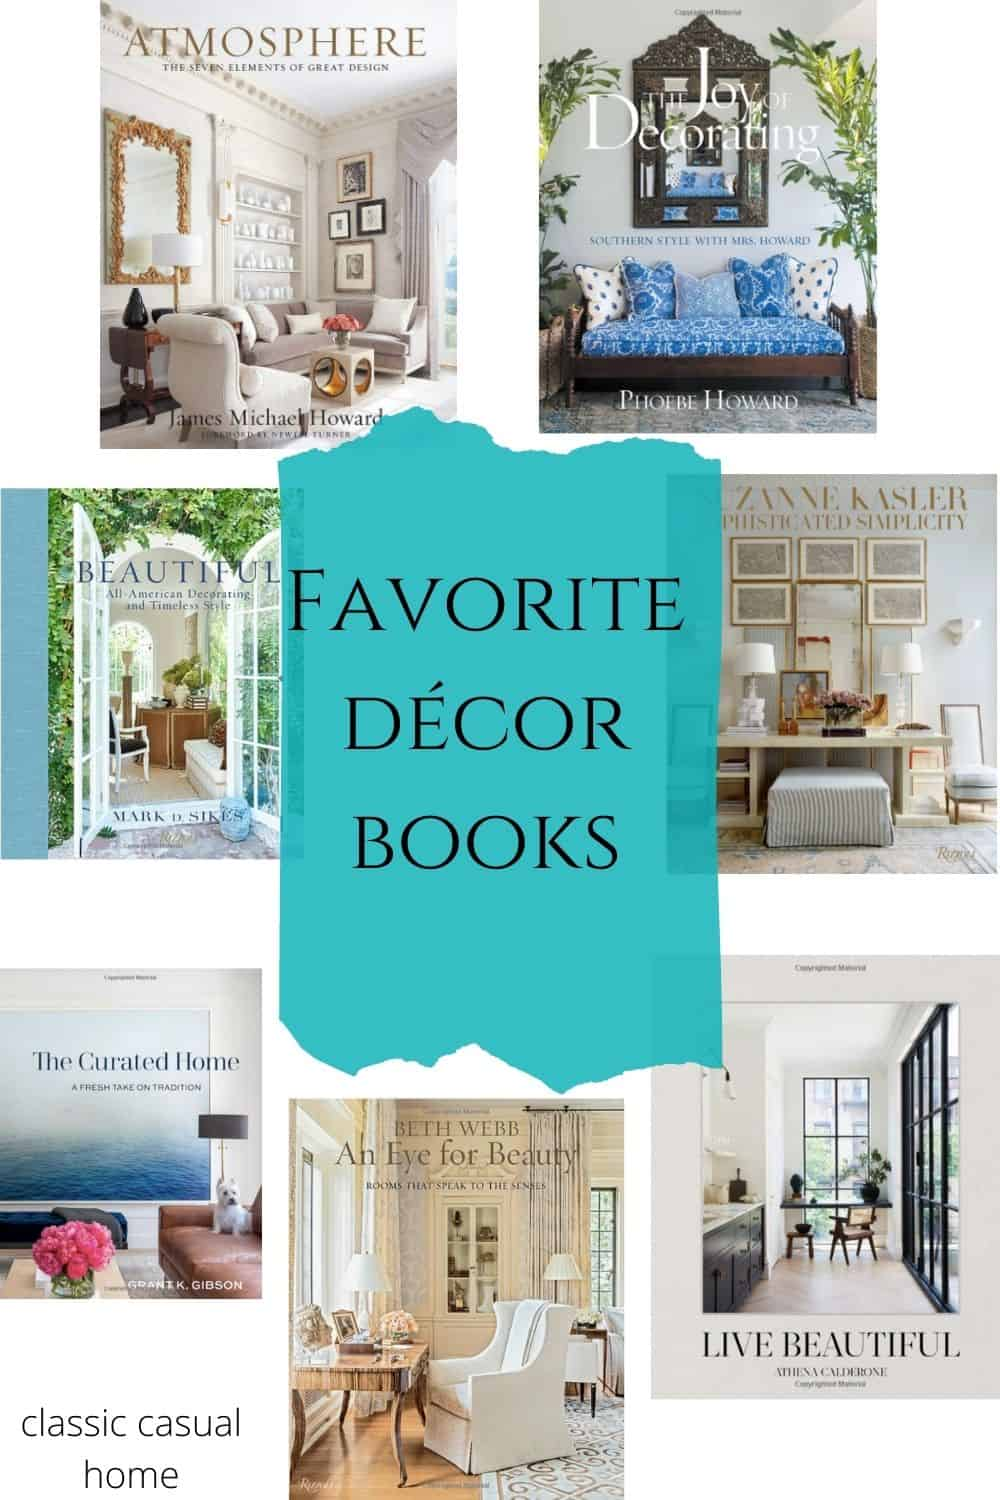 Mary Ann Pickett's Favorite Decor Books